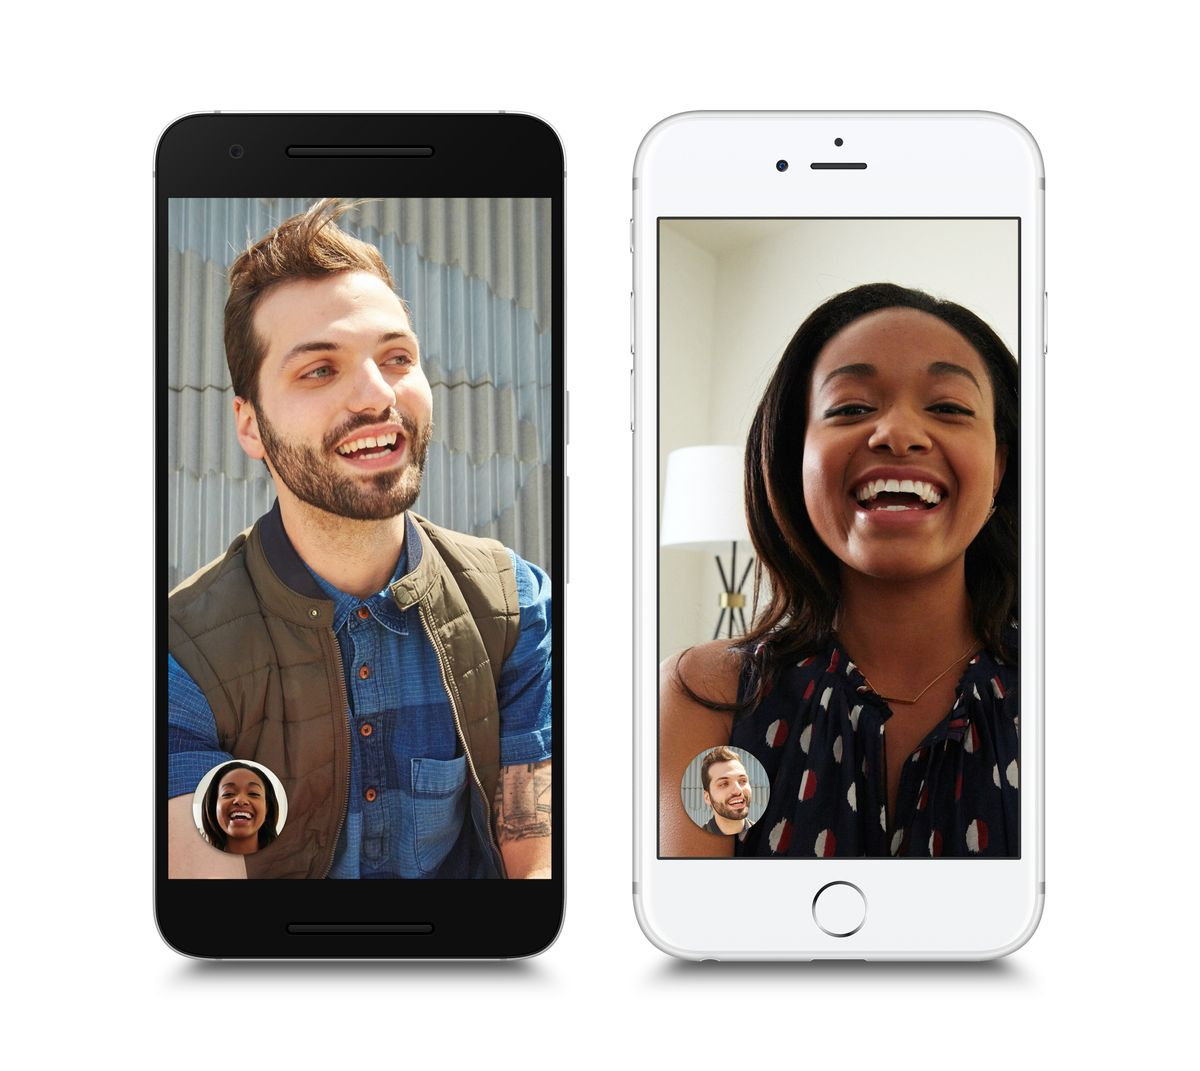 This image provided by Google shows its video chatting app on mobile devices. The app, dubbed Duo, represents Google's response to other popular video calling options, including Apple's FaceTime, Microsoft's Skype and Facebook's Messenger app. The new app, announced in May, is being released Tuesday, Aug. 16, 2016, as a free service for phones running on Google's Android operating system as well as Apple's iPhones. (Google via AP) (AP)